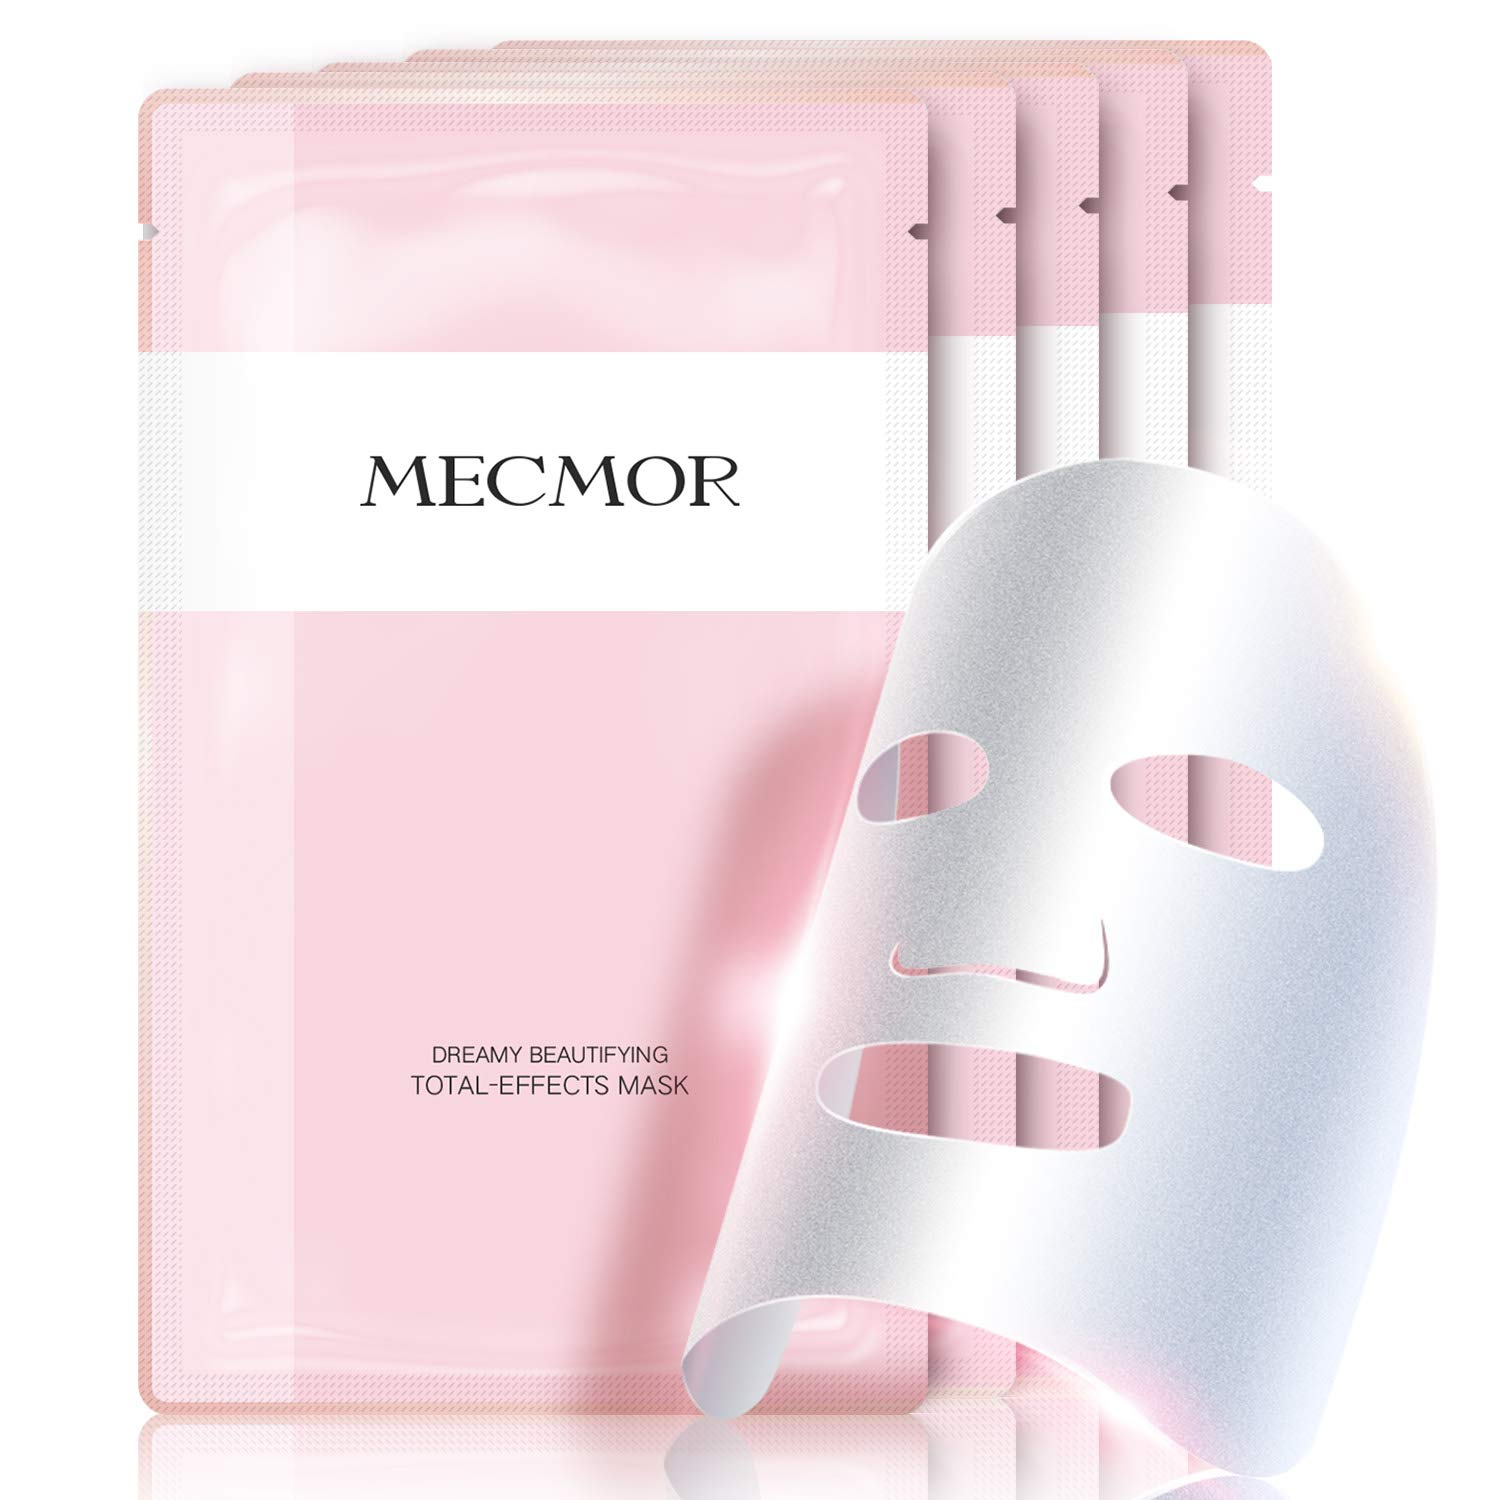 MECMOR Brightening Facial Whitening Treatment Mask Vitamin C 5 PCs, Fade Dark Spots Acne Scars Hydrating Moisturizing with Hyaluronic Acid Mask Sheet for Sensitive, Oily and Dry Skin, Additive Free